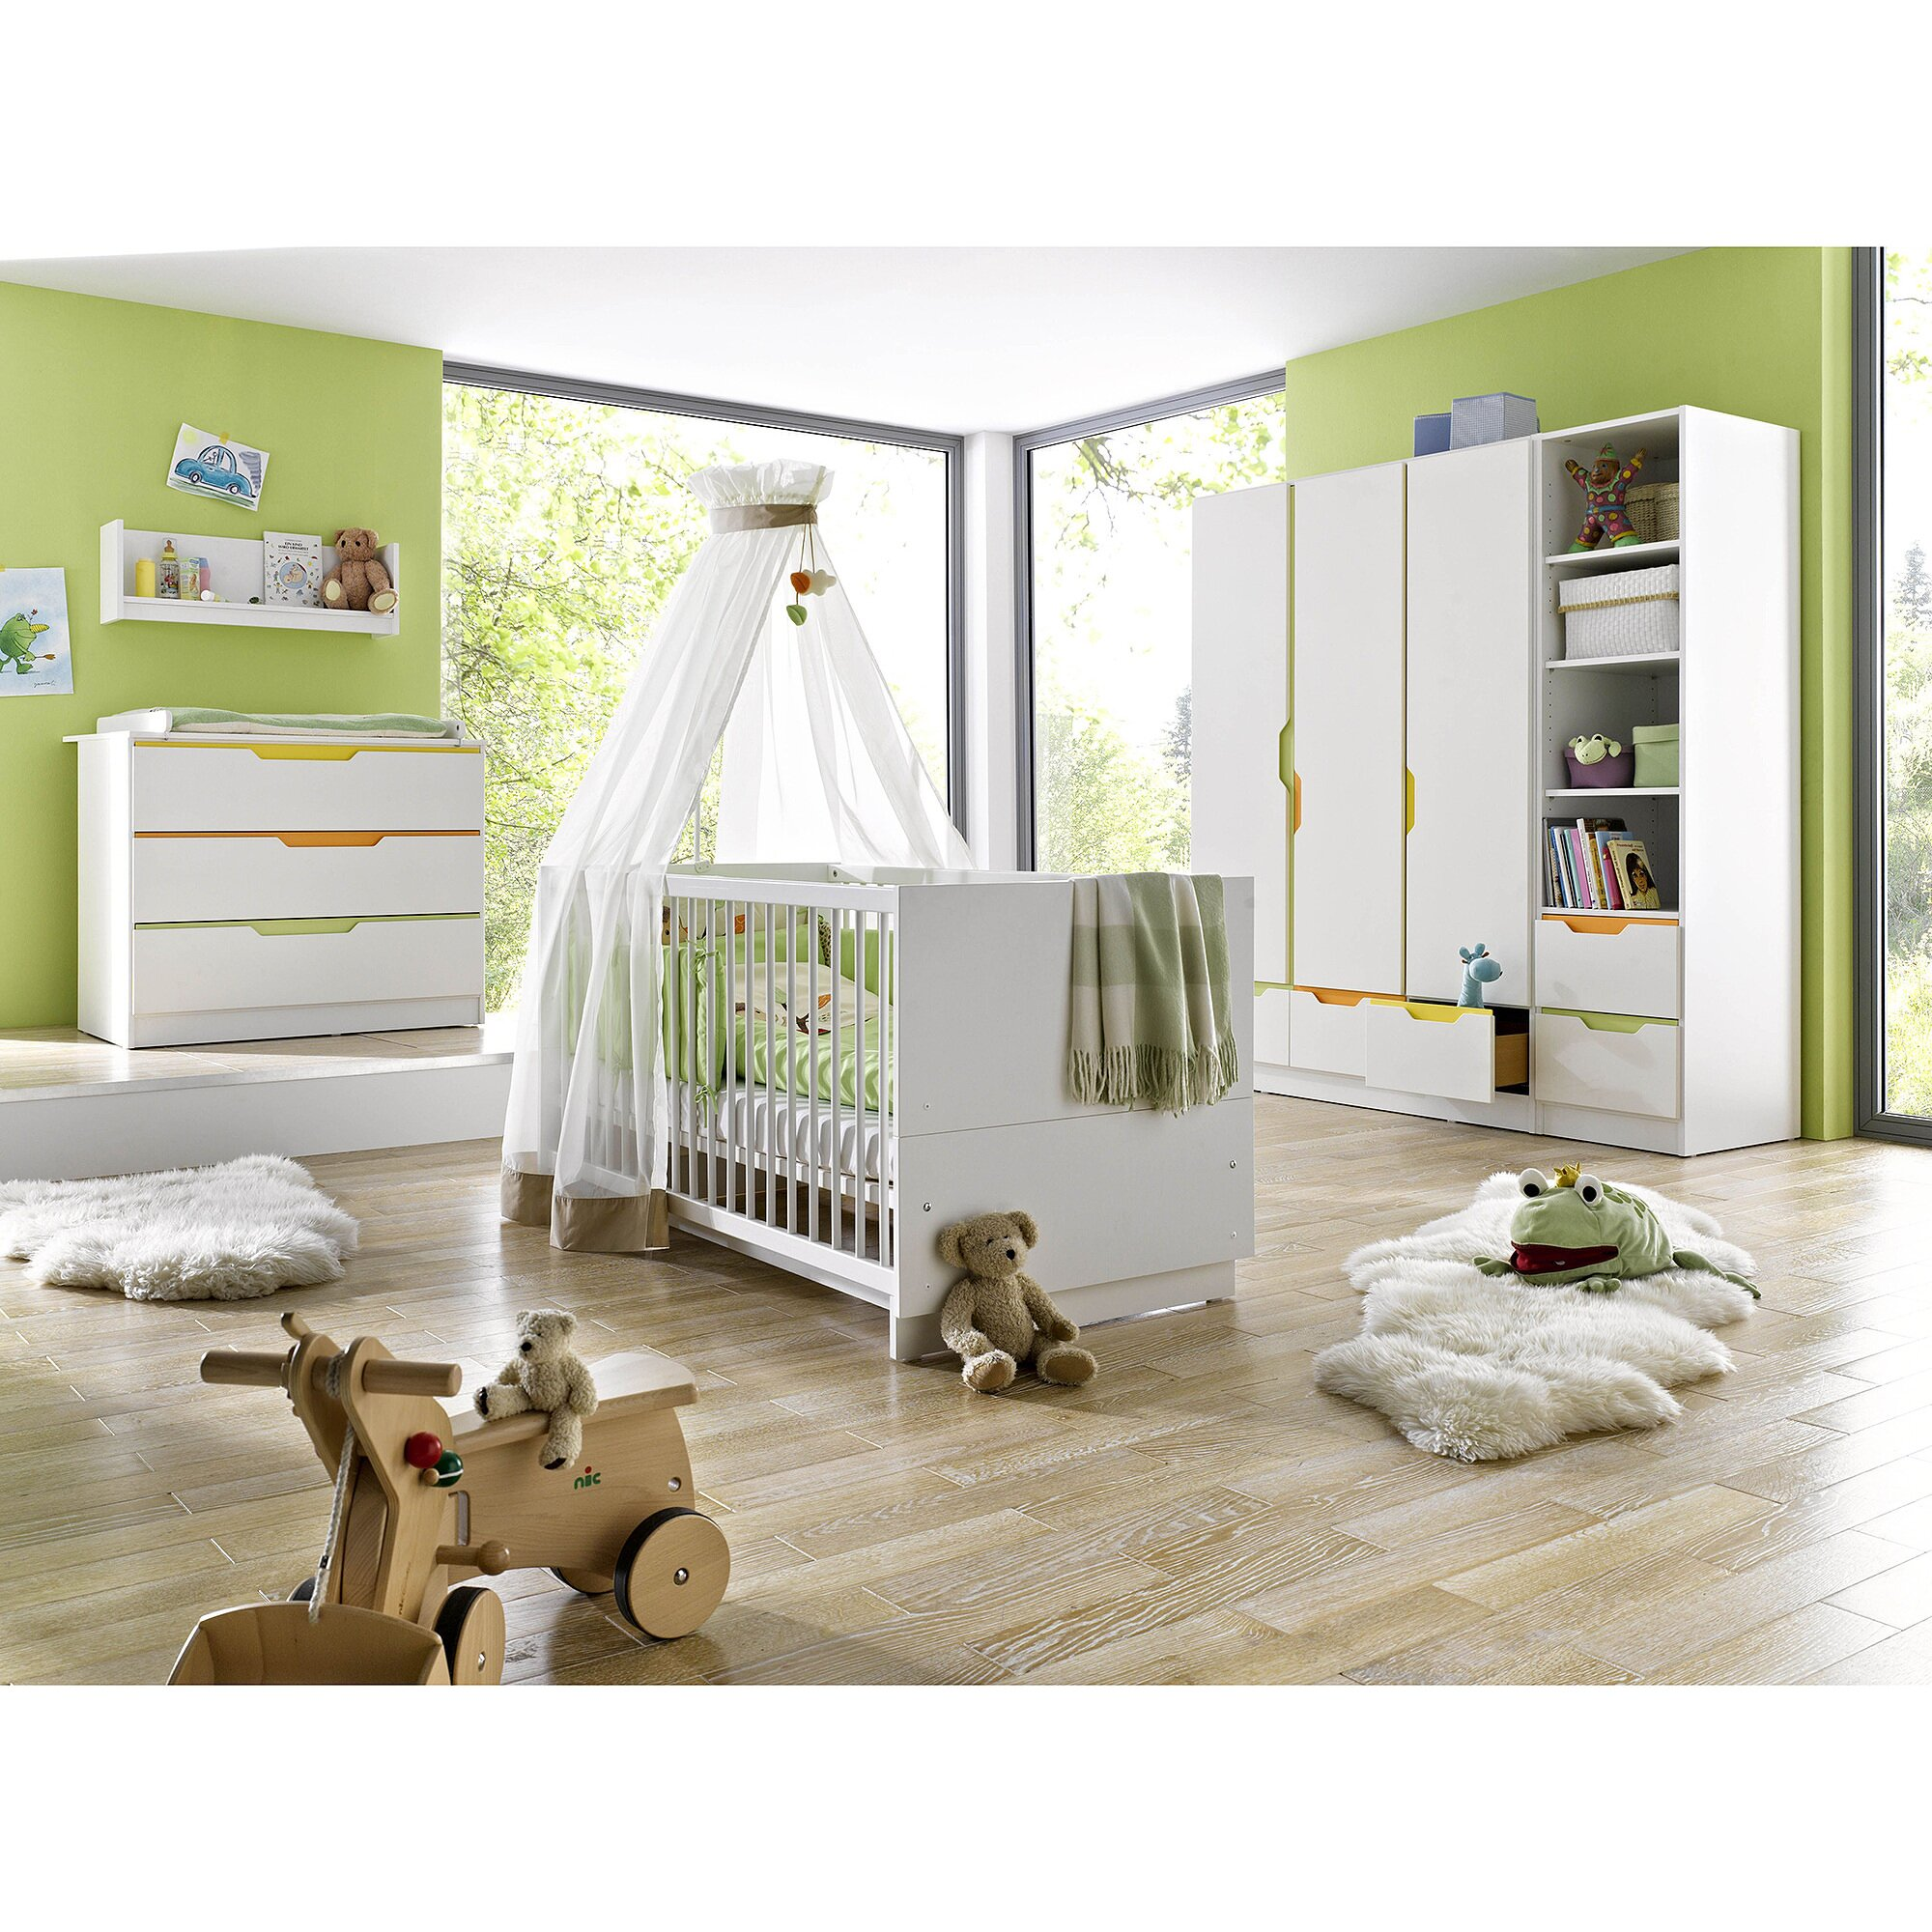 Geuther Kinderzimmer-Set FRESH